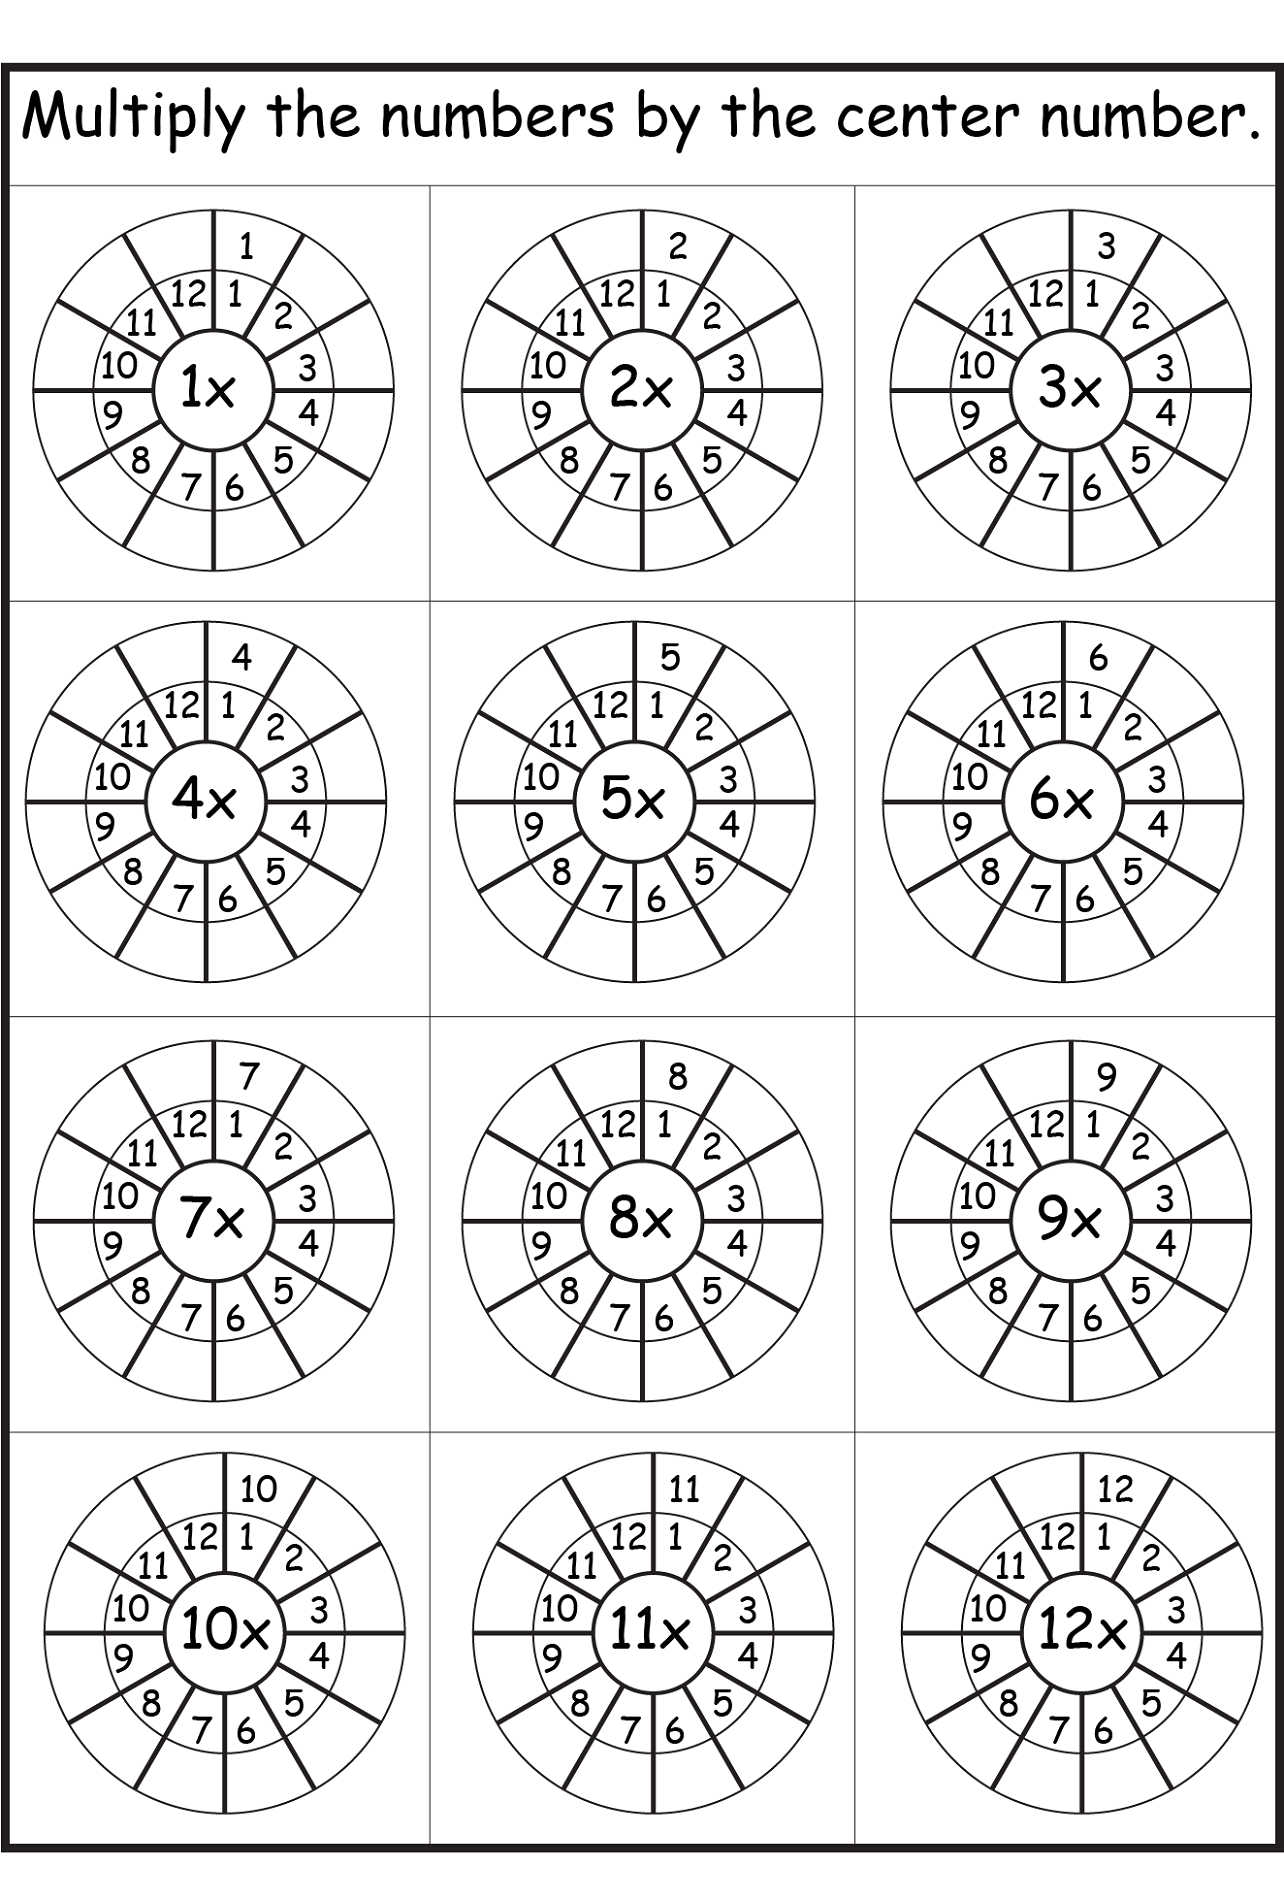 math worksheet : 8 times tables worksheets  activity shelter : Multiplication Worksheets 8 Times Tables